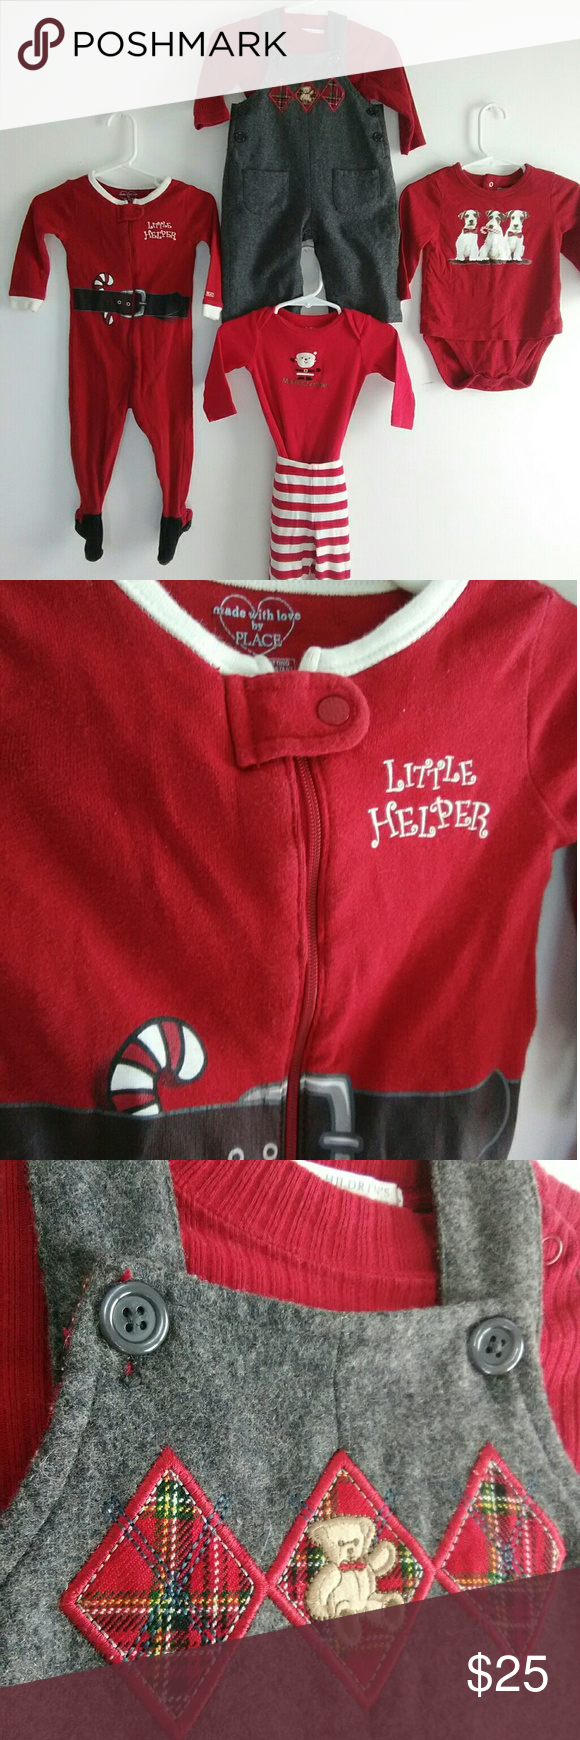 5e55a9173ca Baby Boy Christmas Outfit 0 3 Months